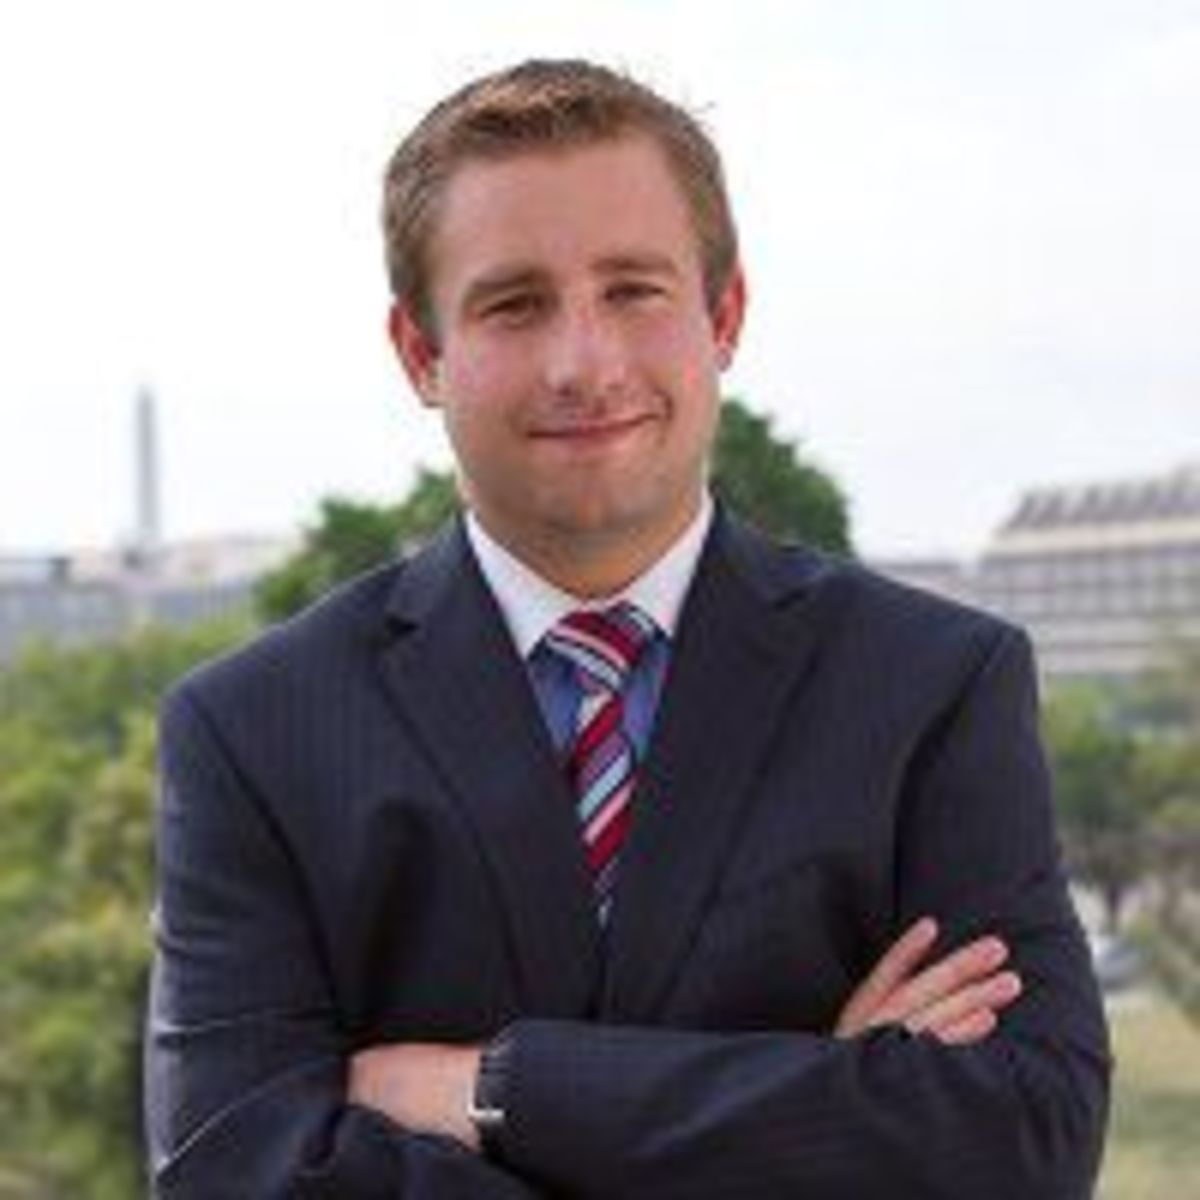 Election Integrity Activists Disturbed by Execution-Style Murder of DNC Data Guru Seth Rich